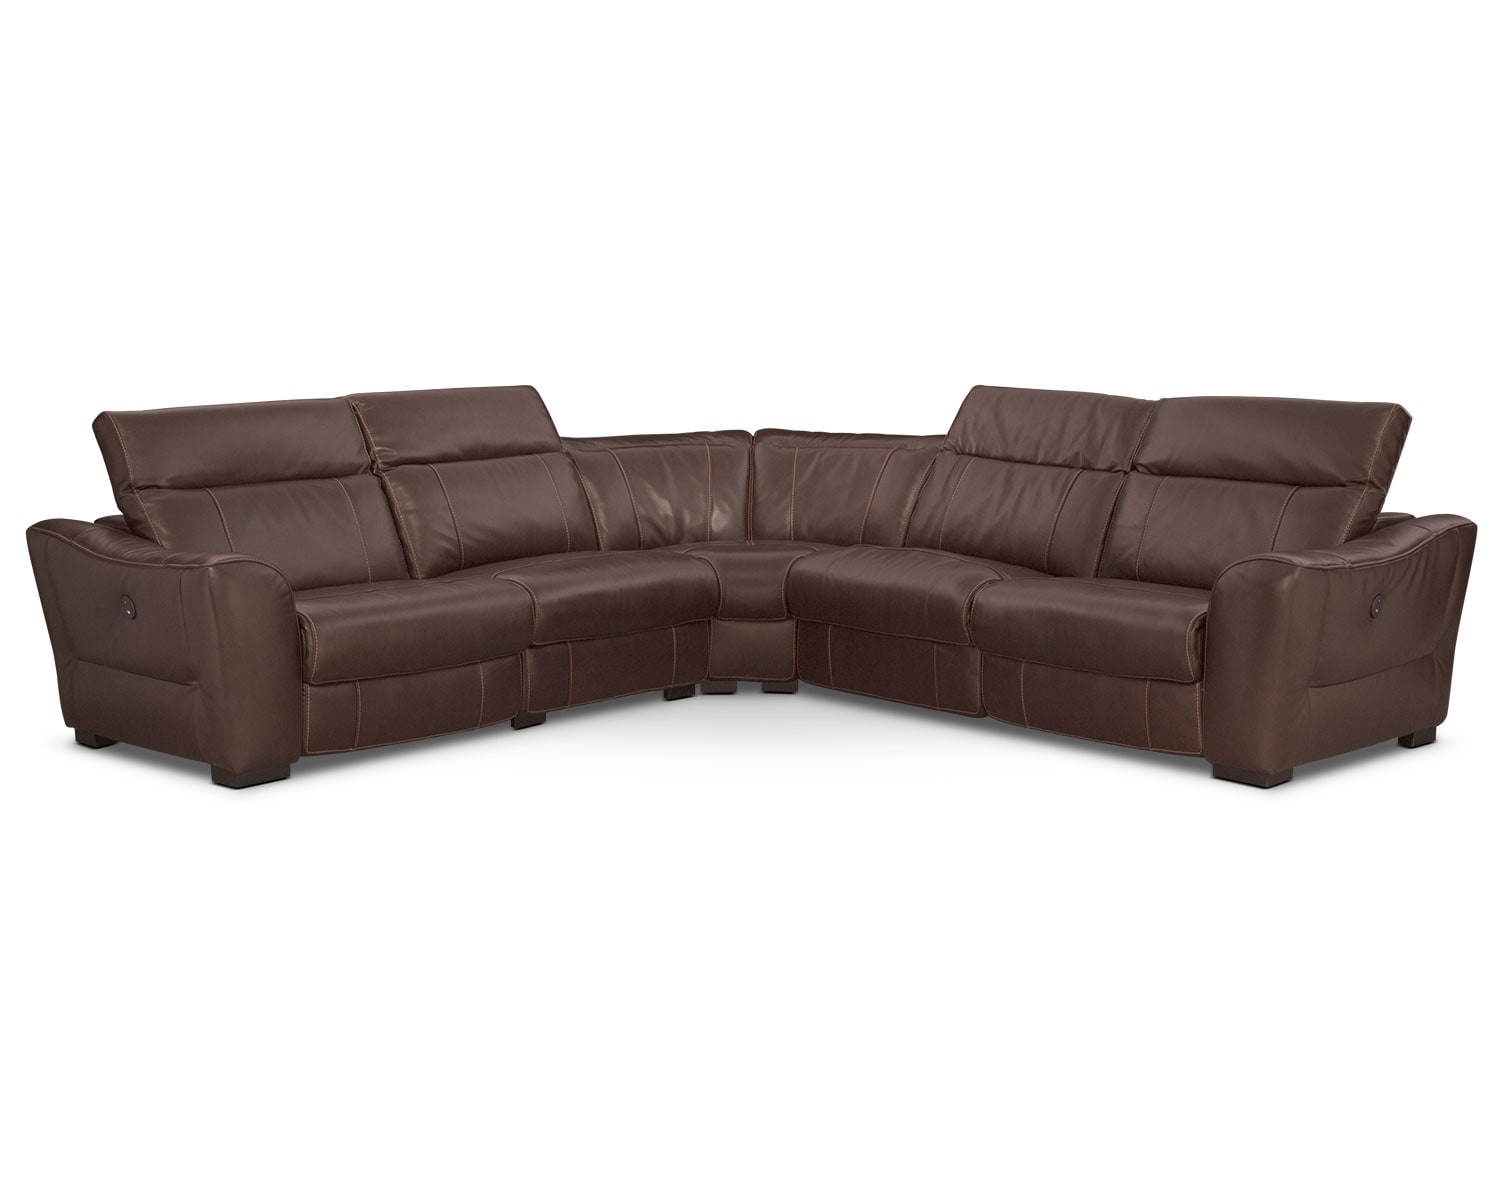 The Palisade Brown Sectional Collection